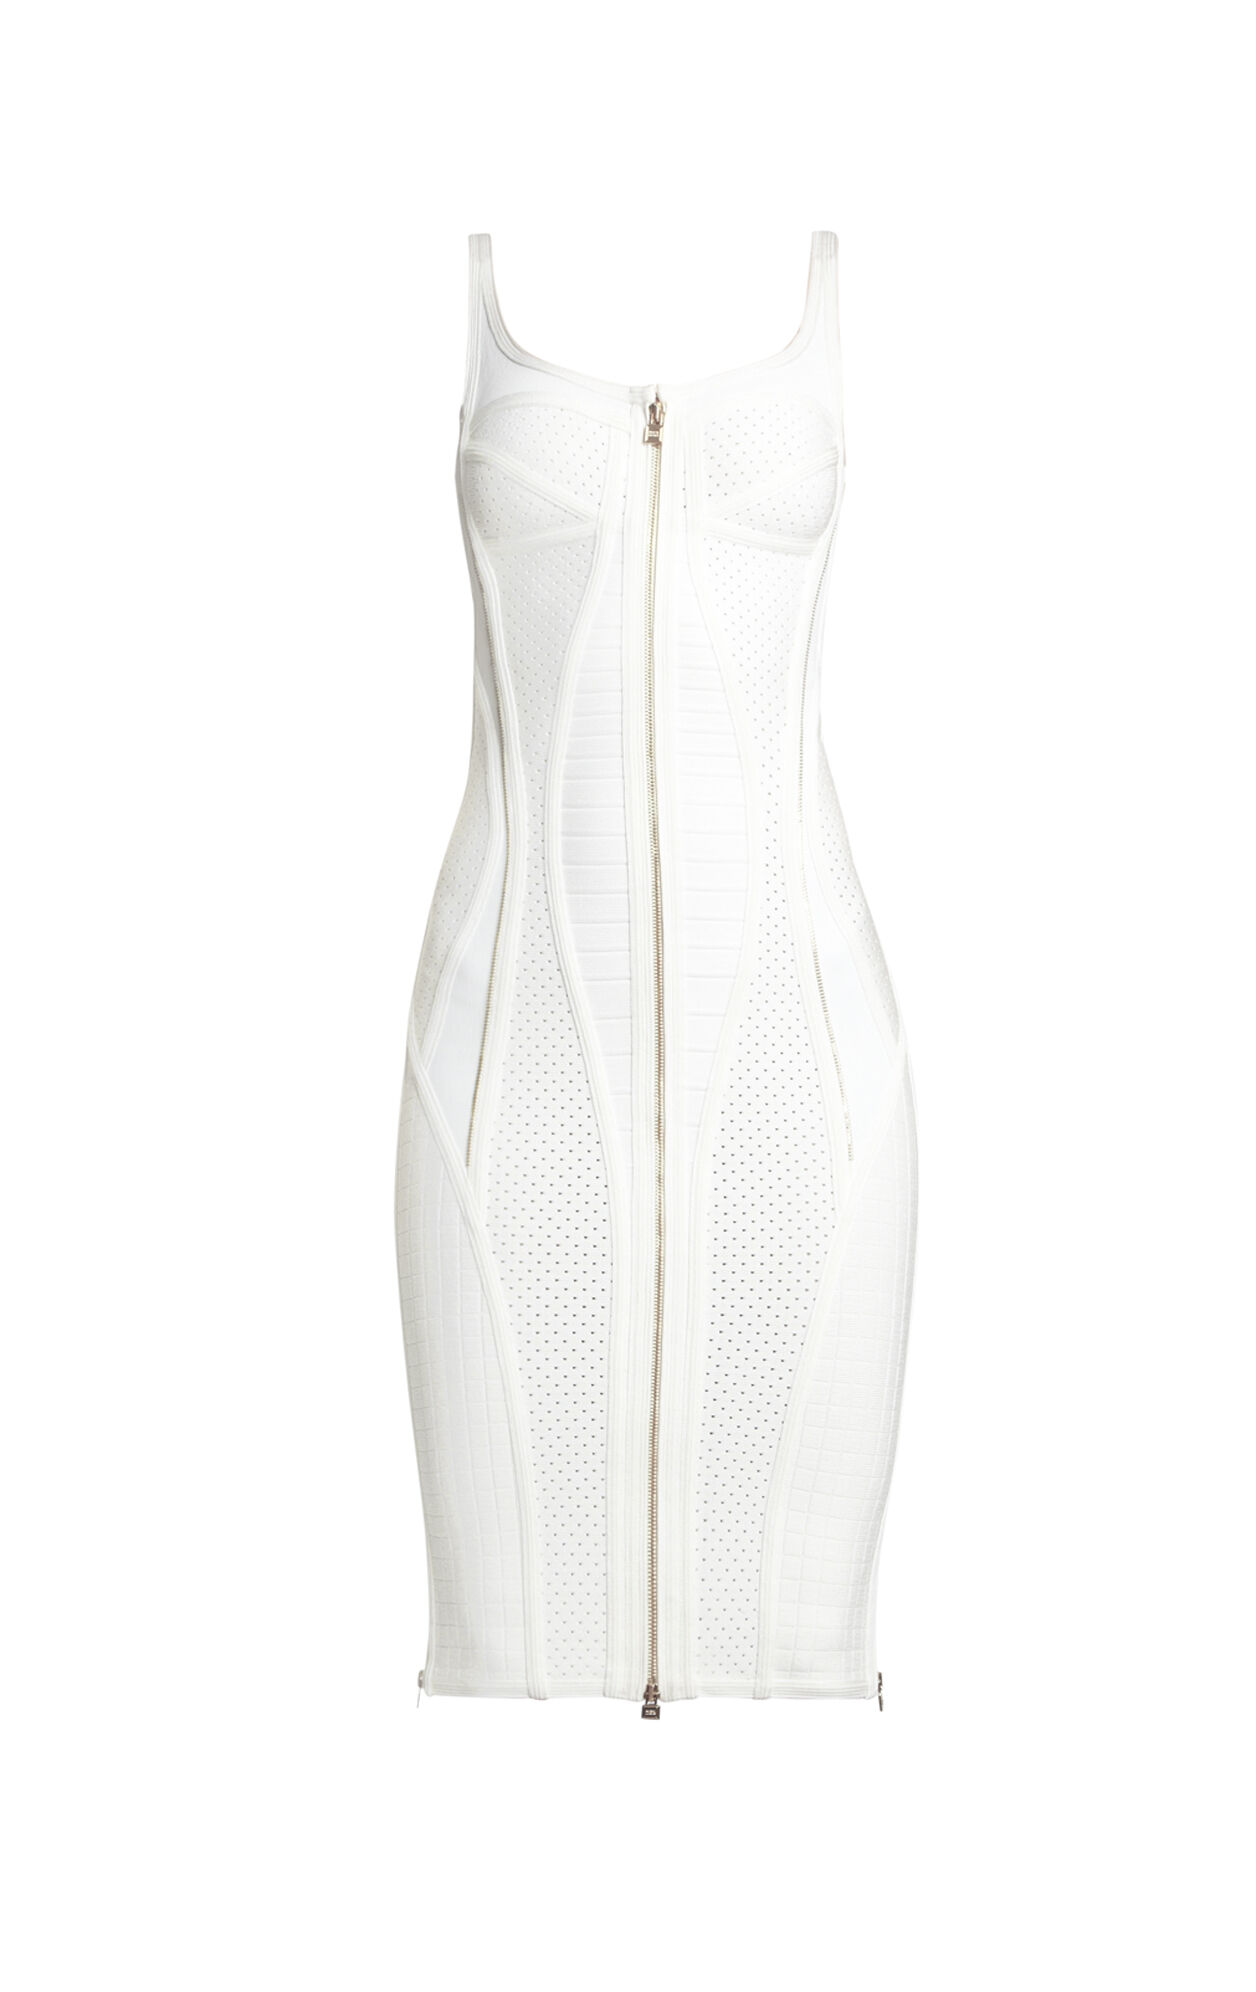 Veroni Zipper-Detailed Dress